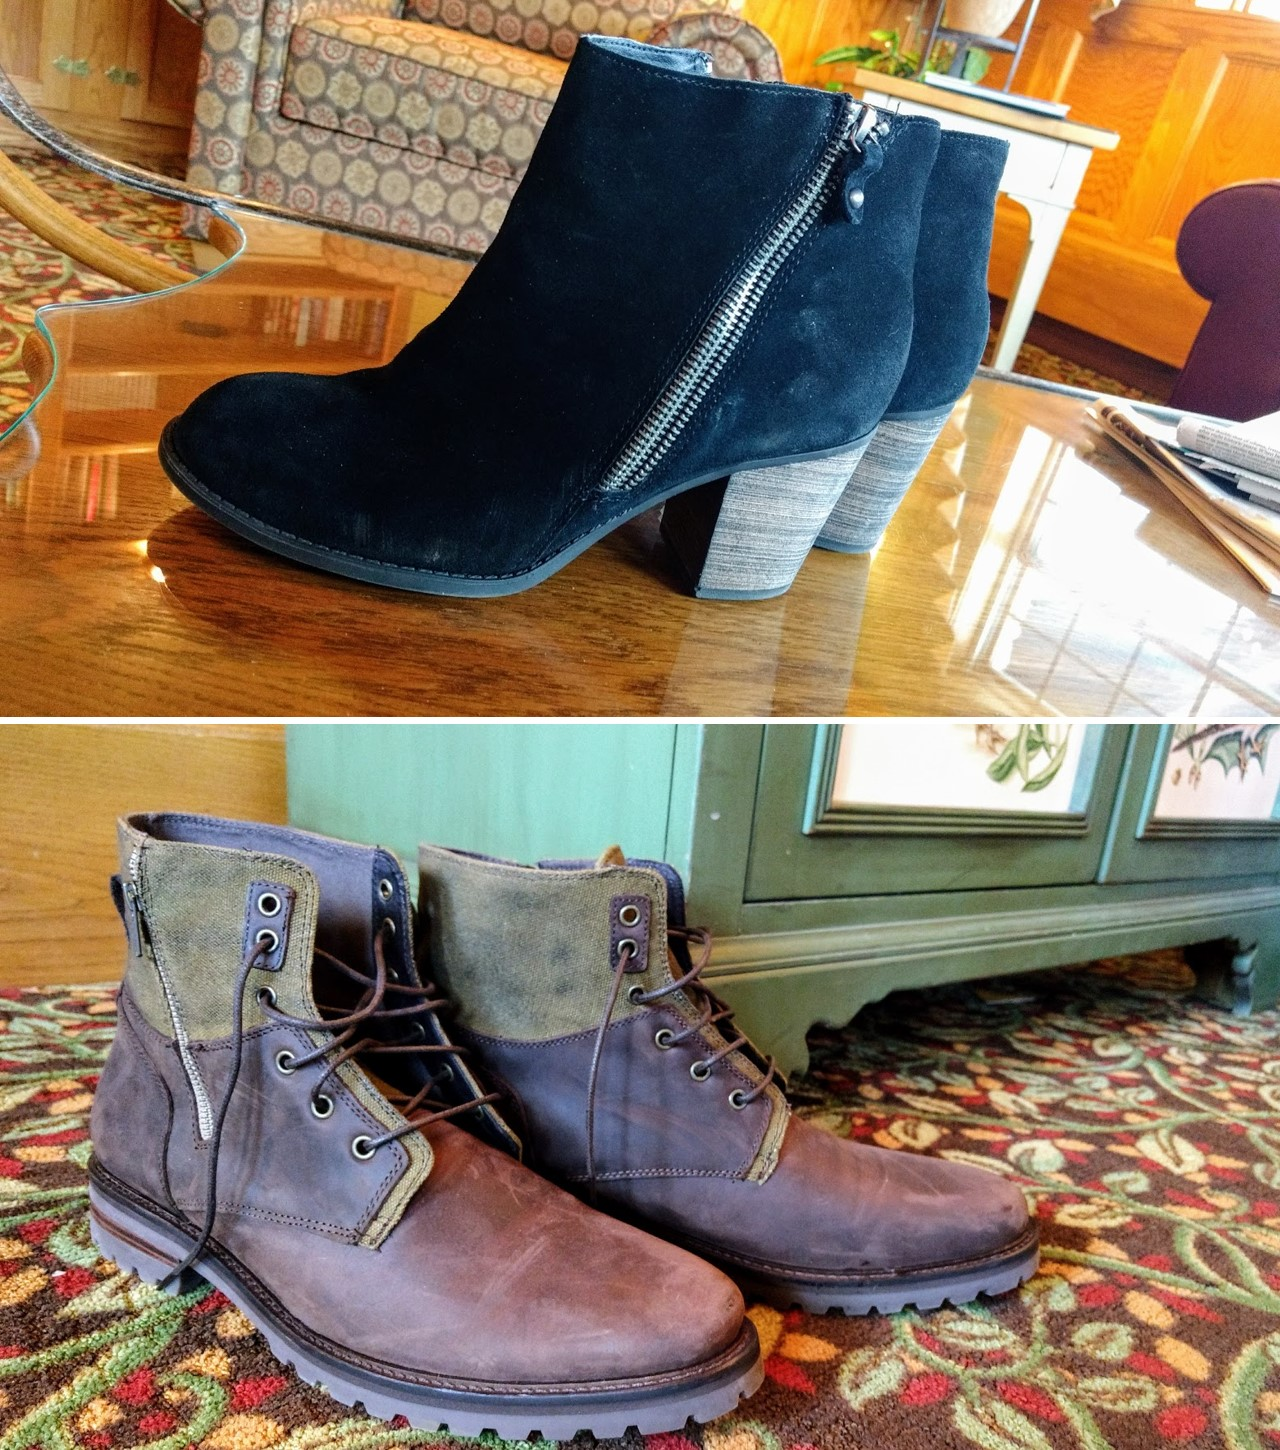 SKECKERS dress boots for men and women